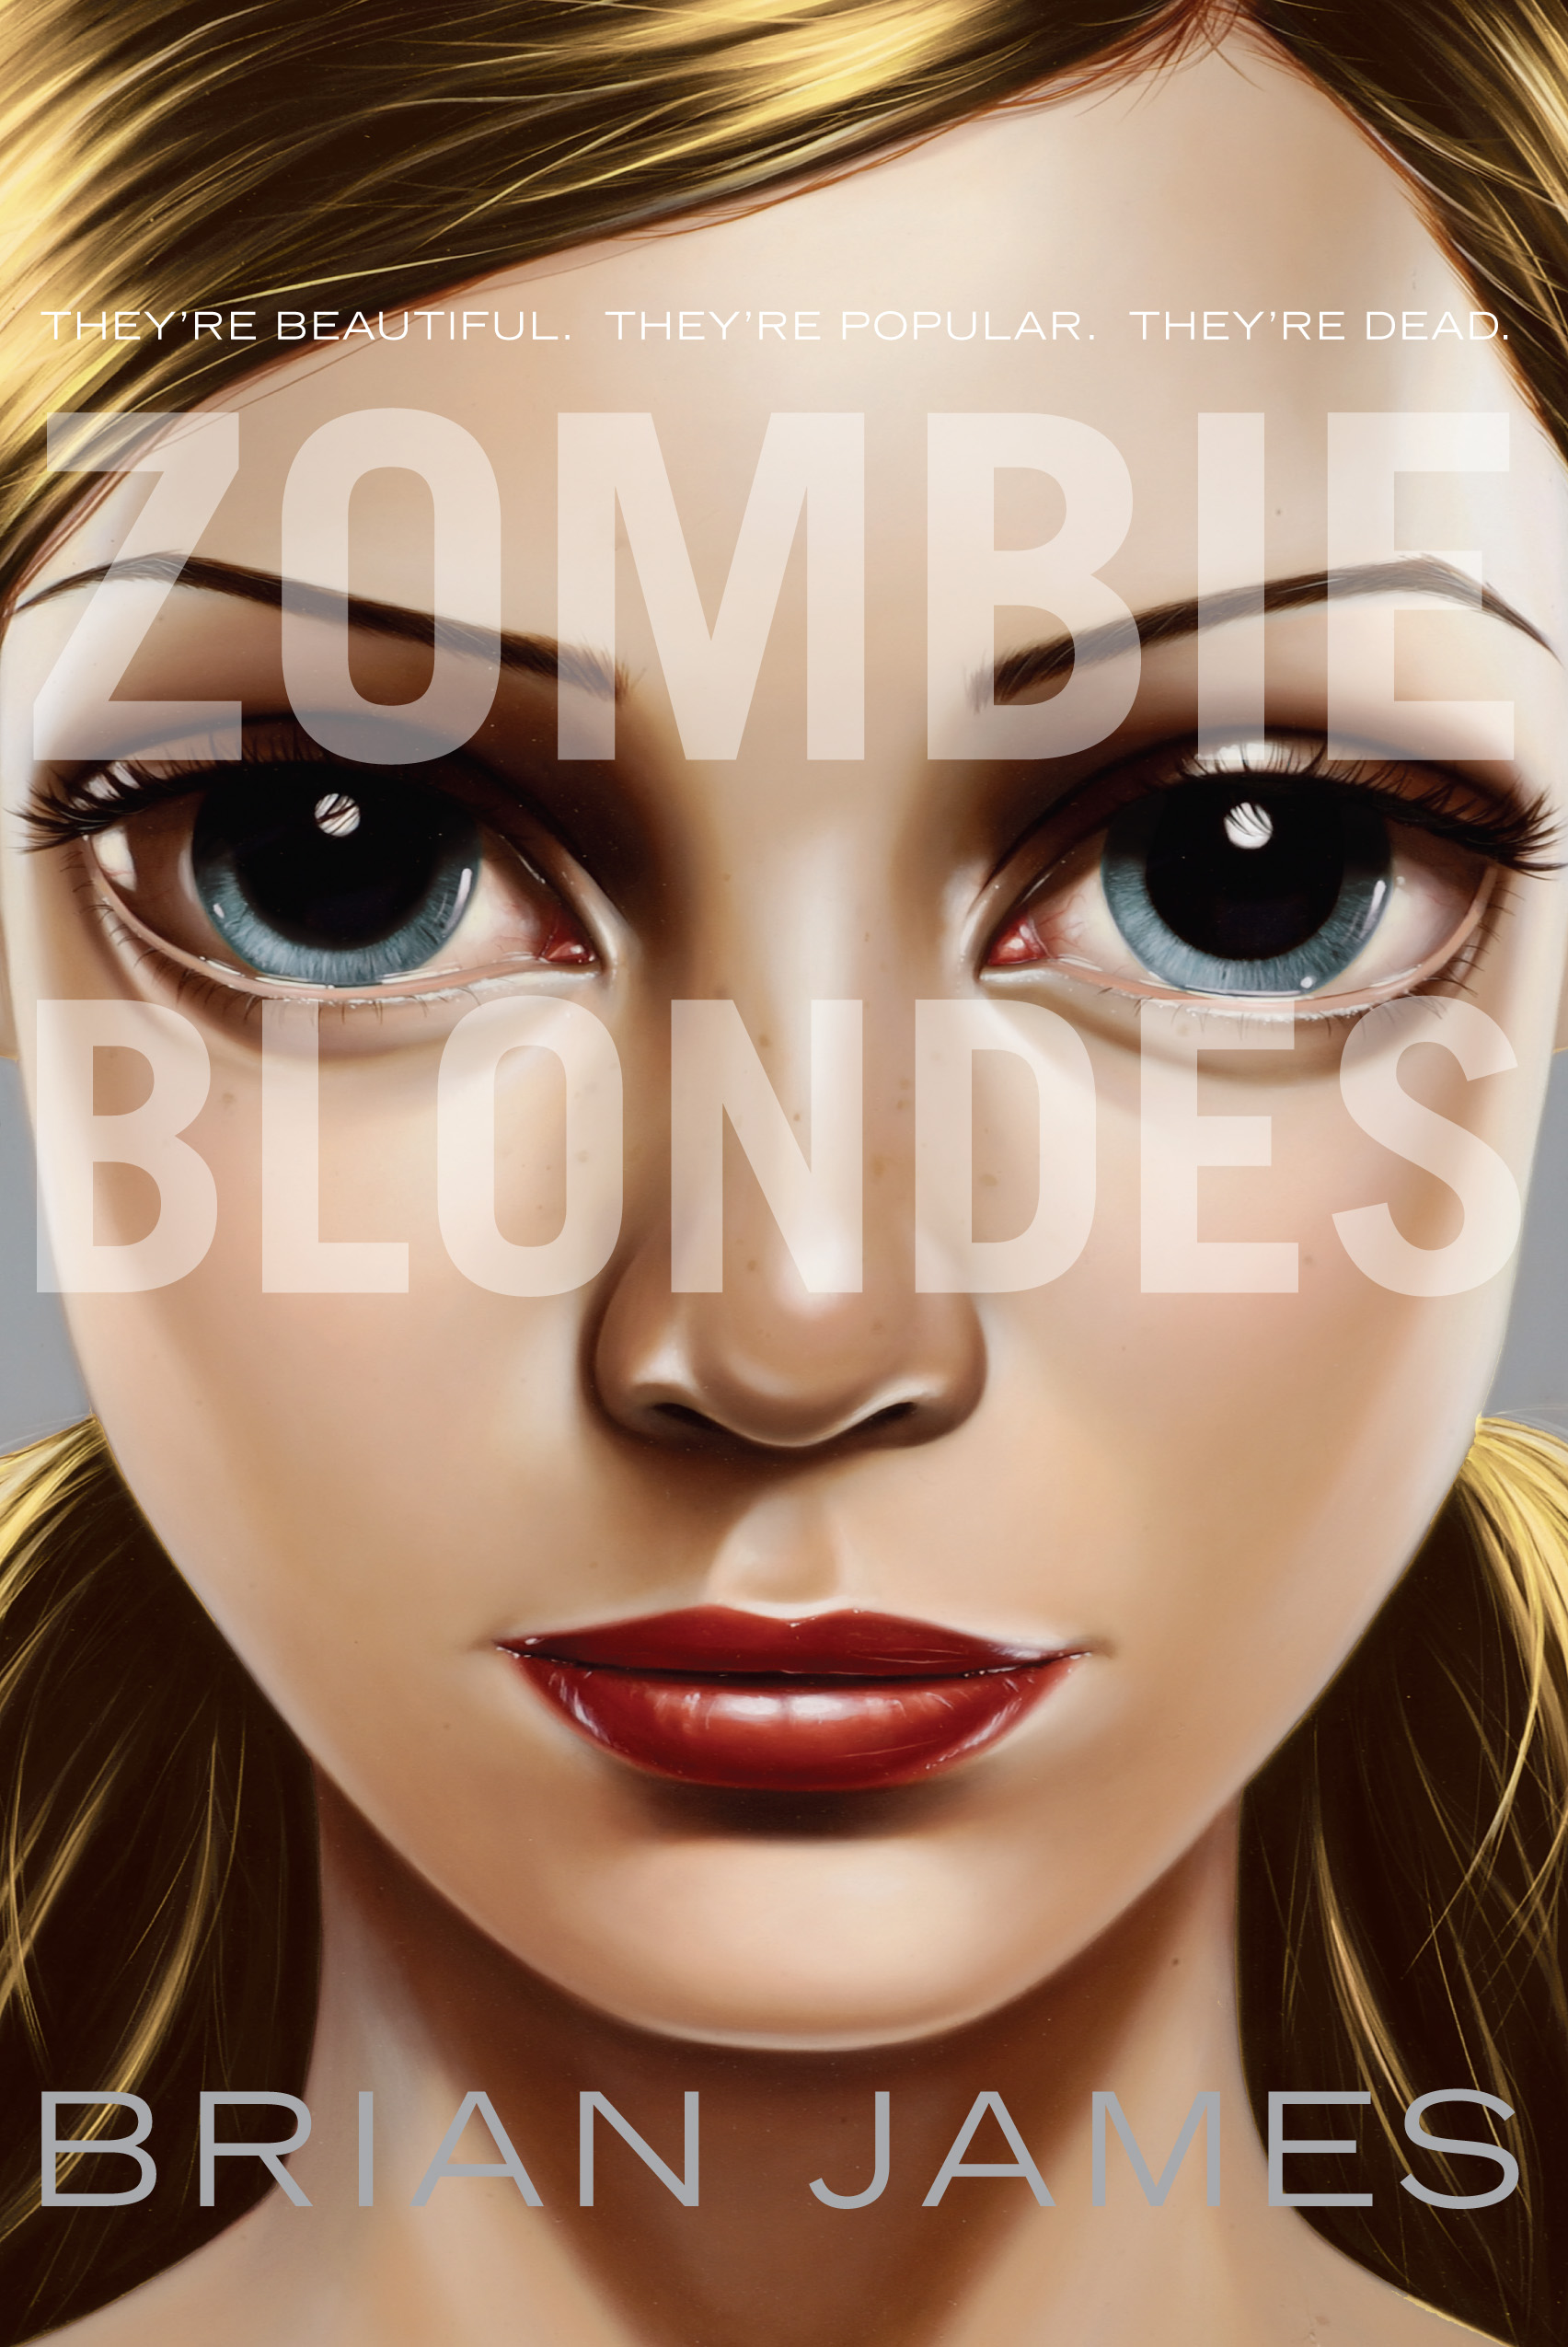 Why did I read this book: I picked up Zombie Blondes on a whim in the ...